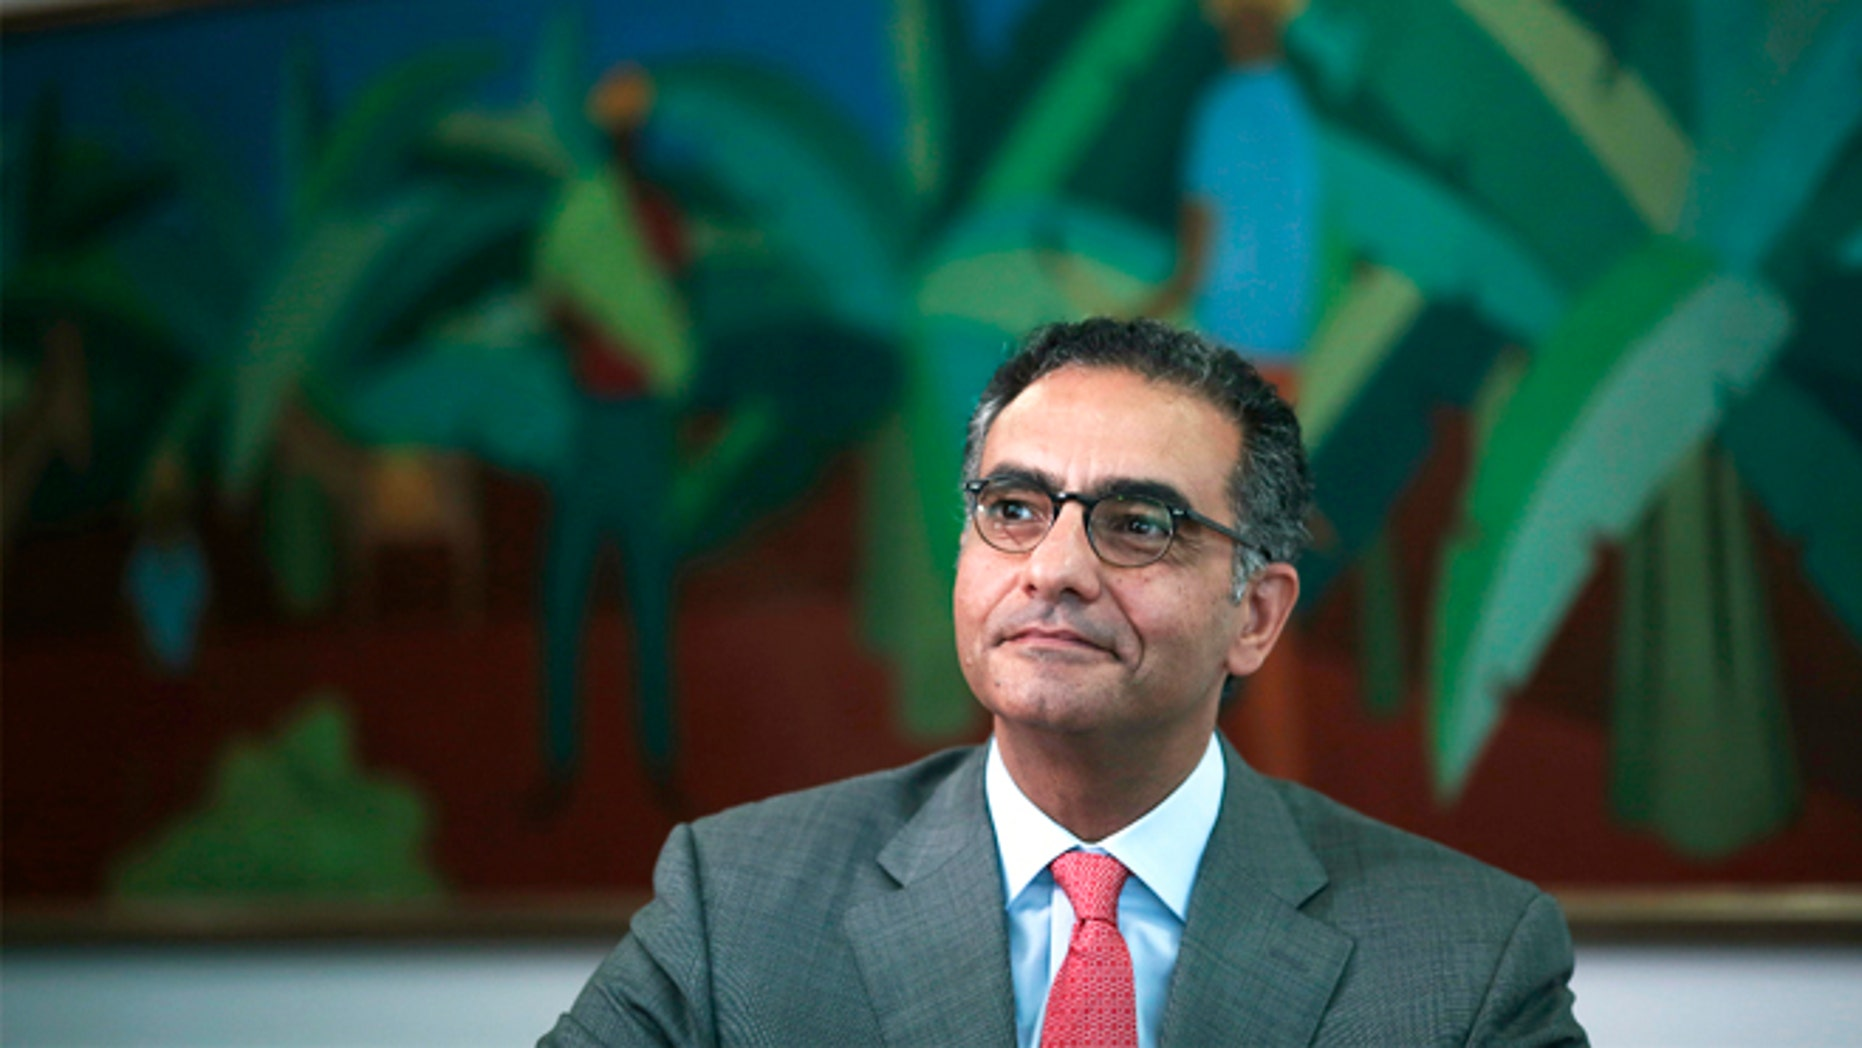 FILE -- October 9, 2013: Fadi Chehade, president and CEO of Internet Corporation for Assigned Names and Numbers (ICANN), attends a meeting with Brazil's President Dilma Rousseff (not seen) at the Planalto Palace in Brasilia.